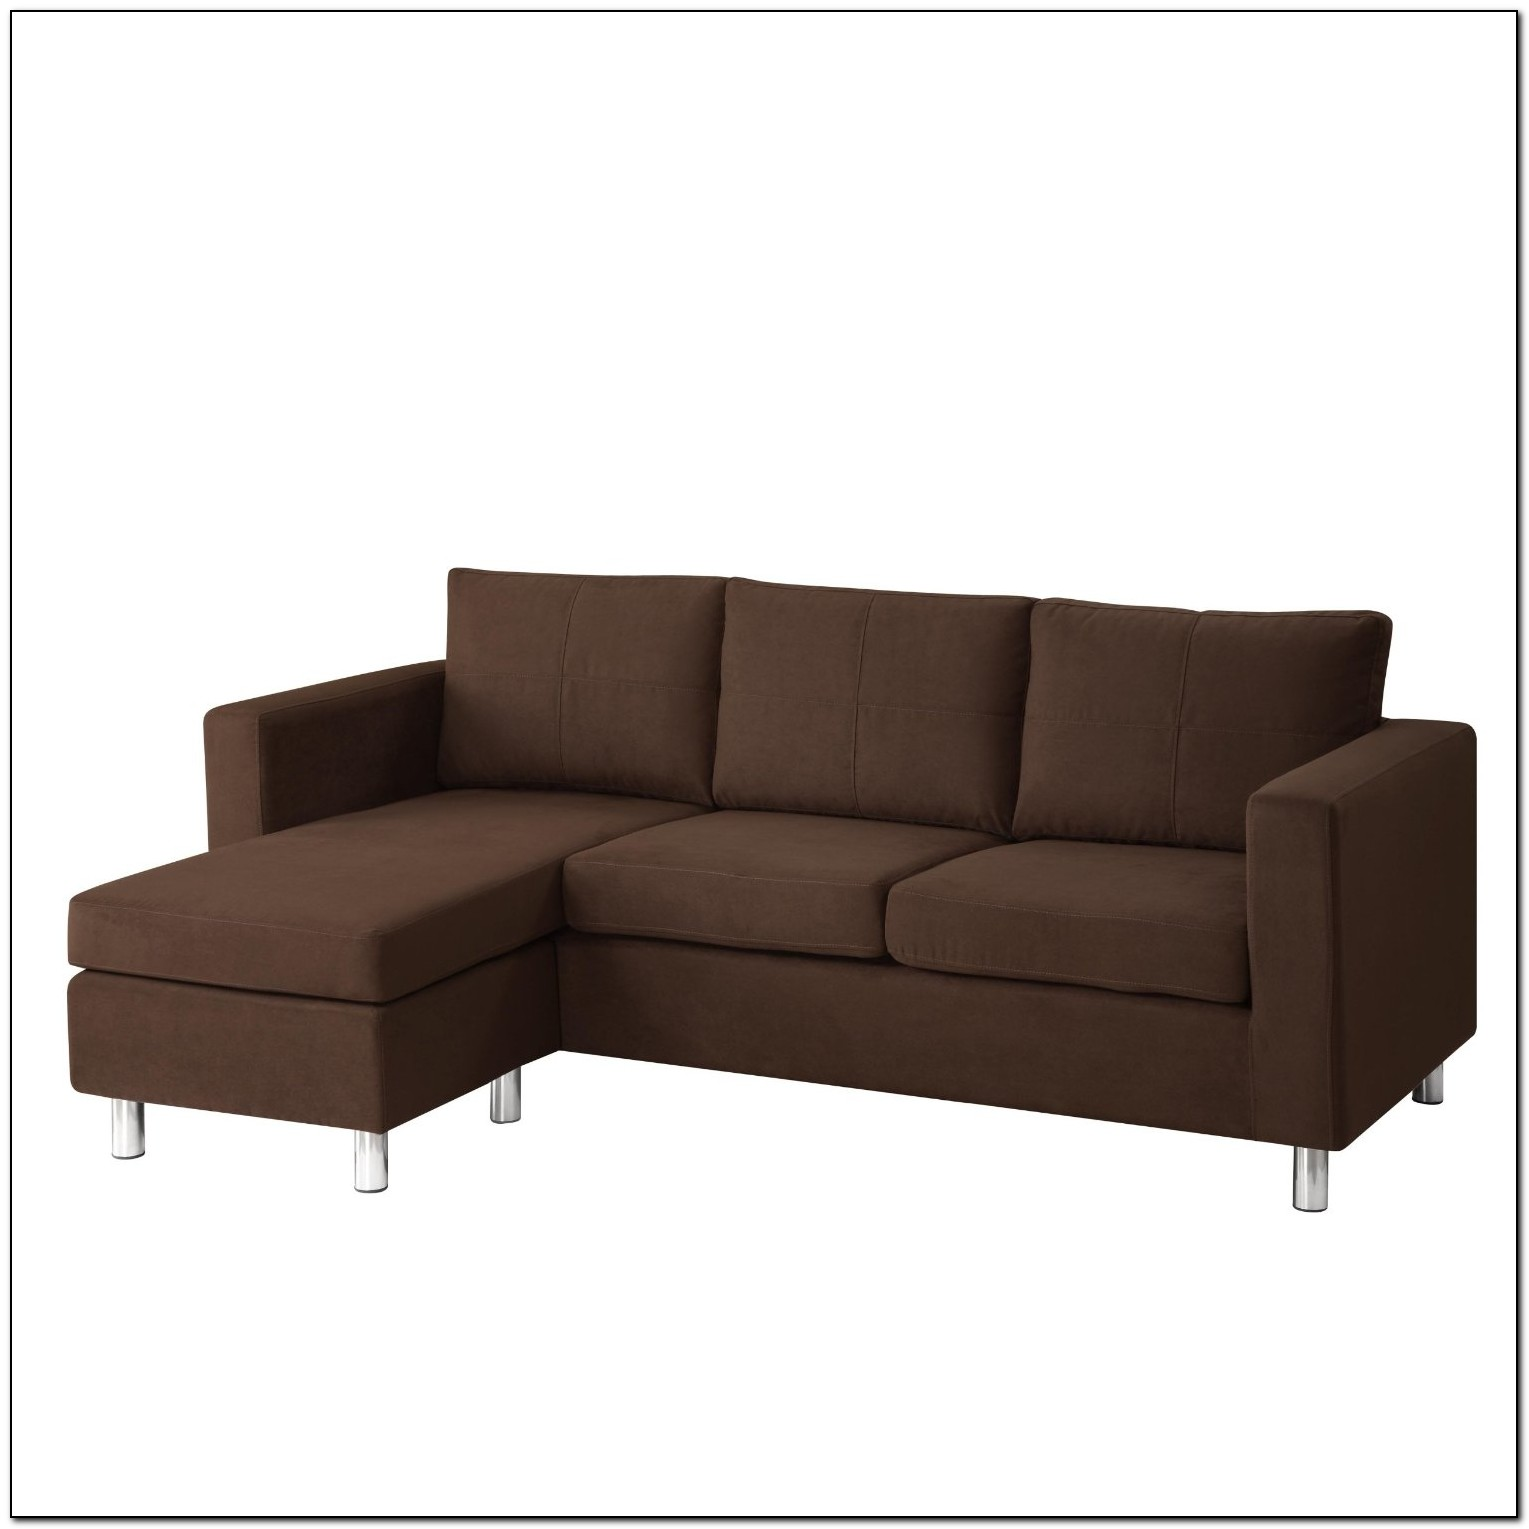 Sectional sofas with chaise for small spaces download page for Chaise game free download